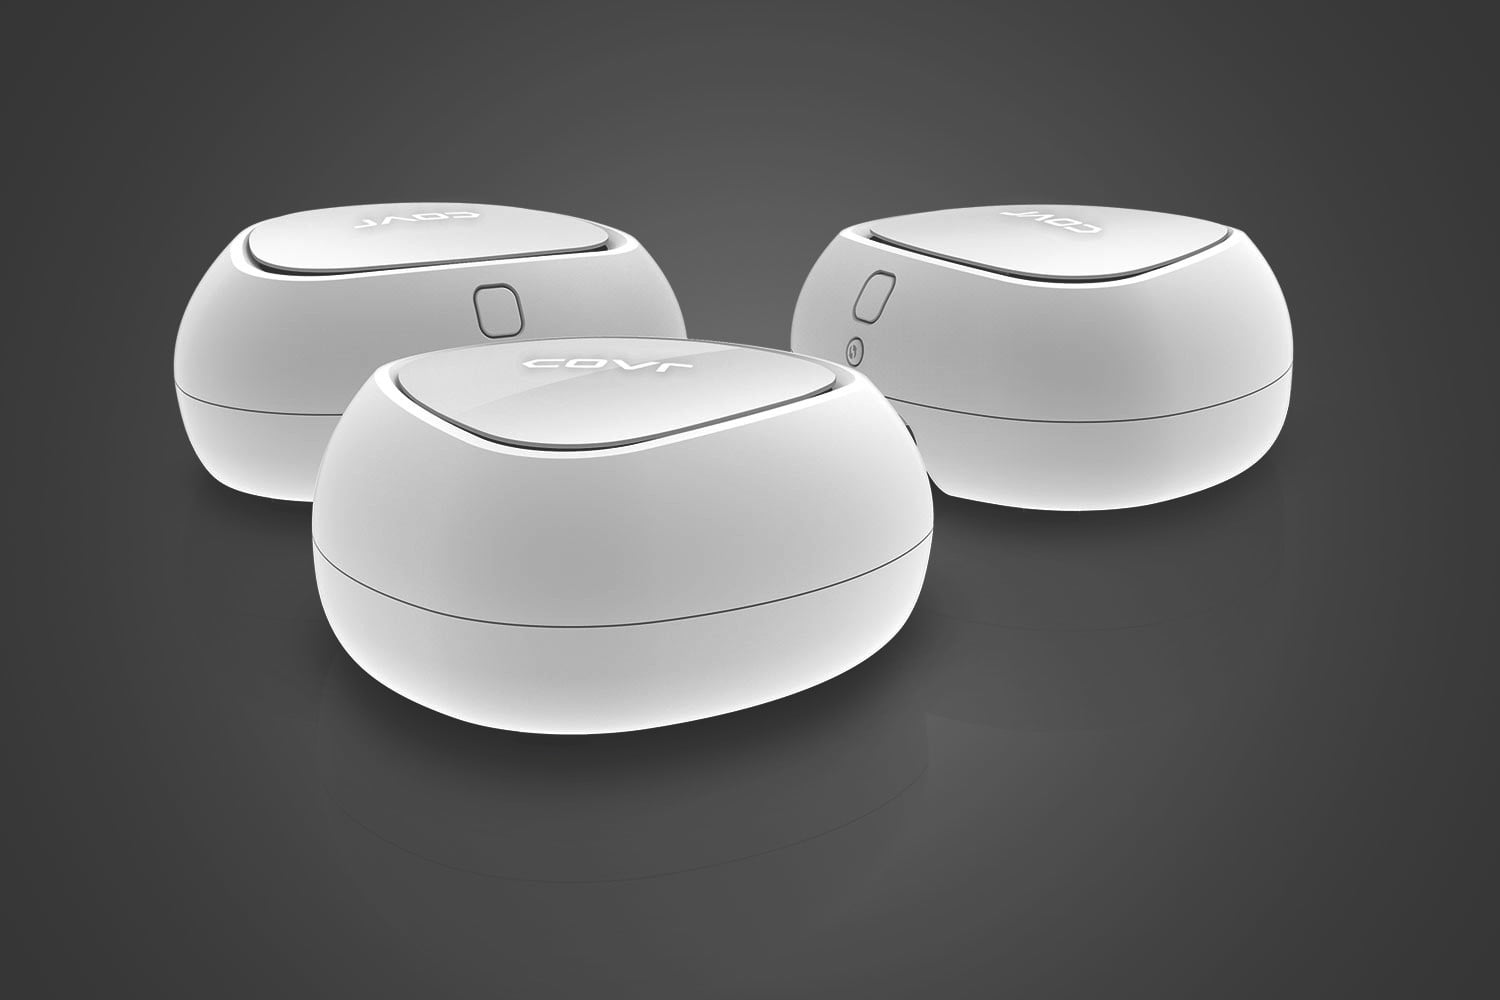 D-LInk Covr 1203 Wi-Fi mesh networking